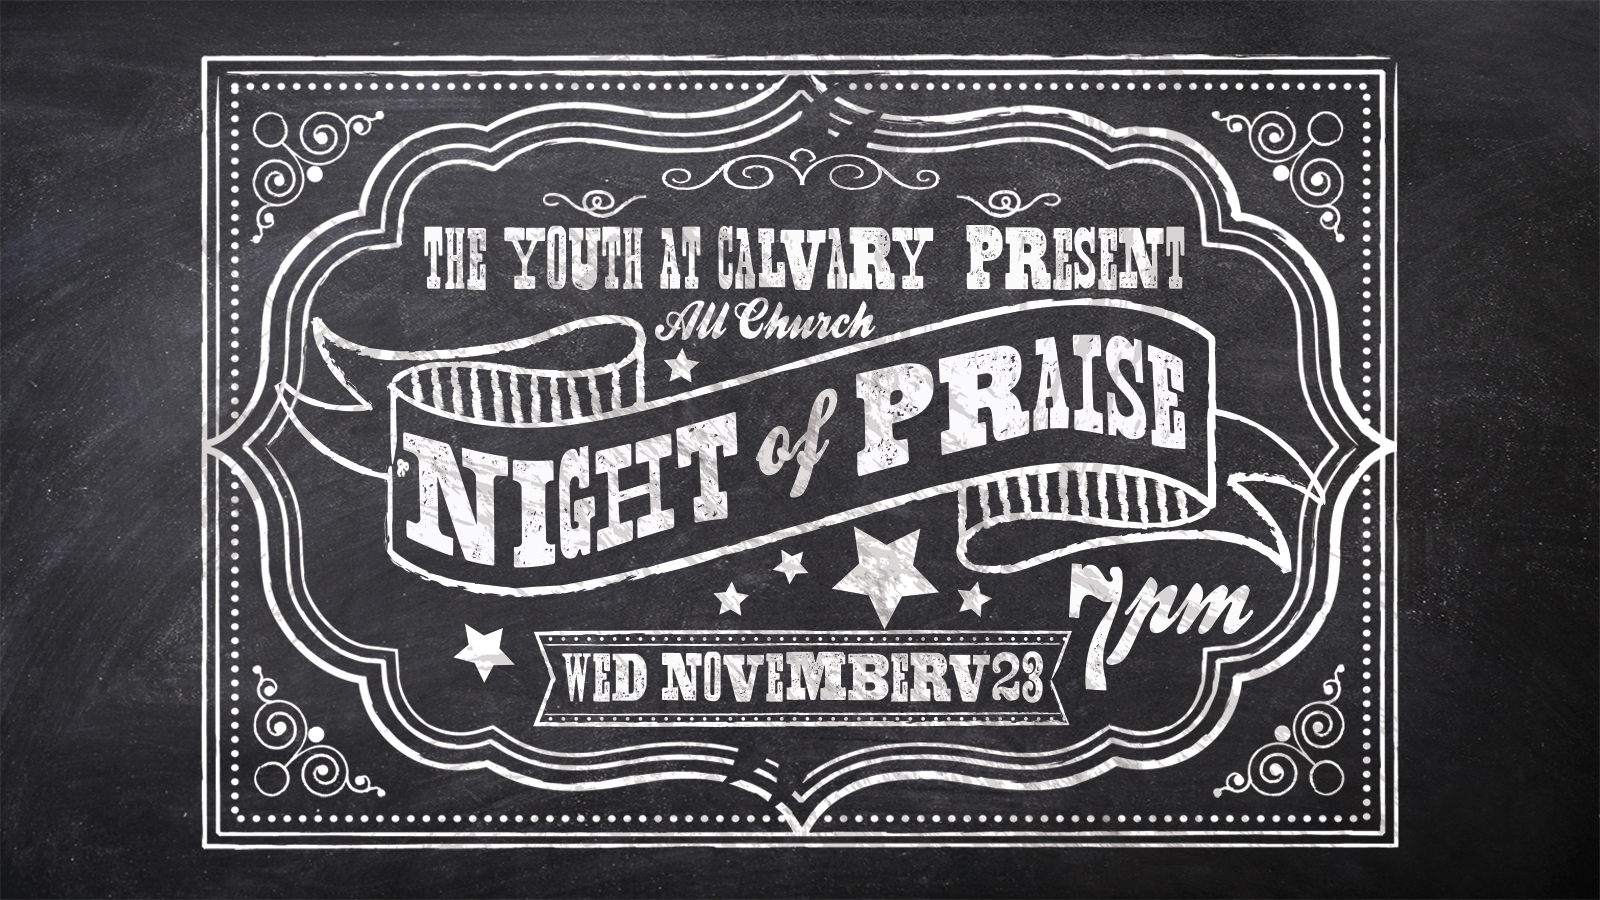 Night of Praise